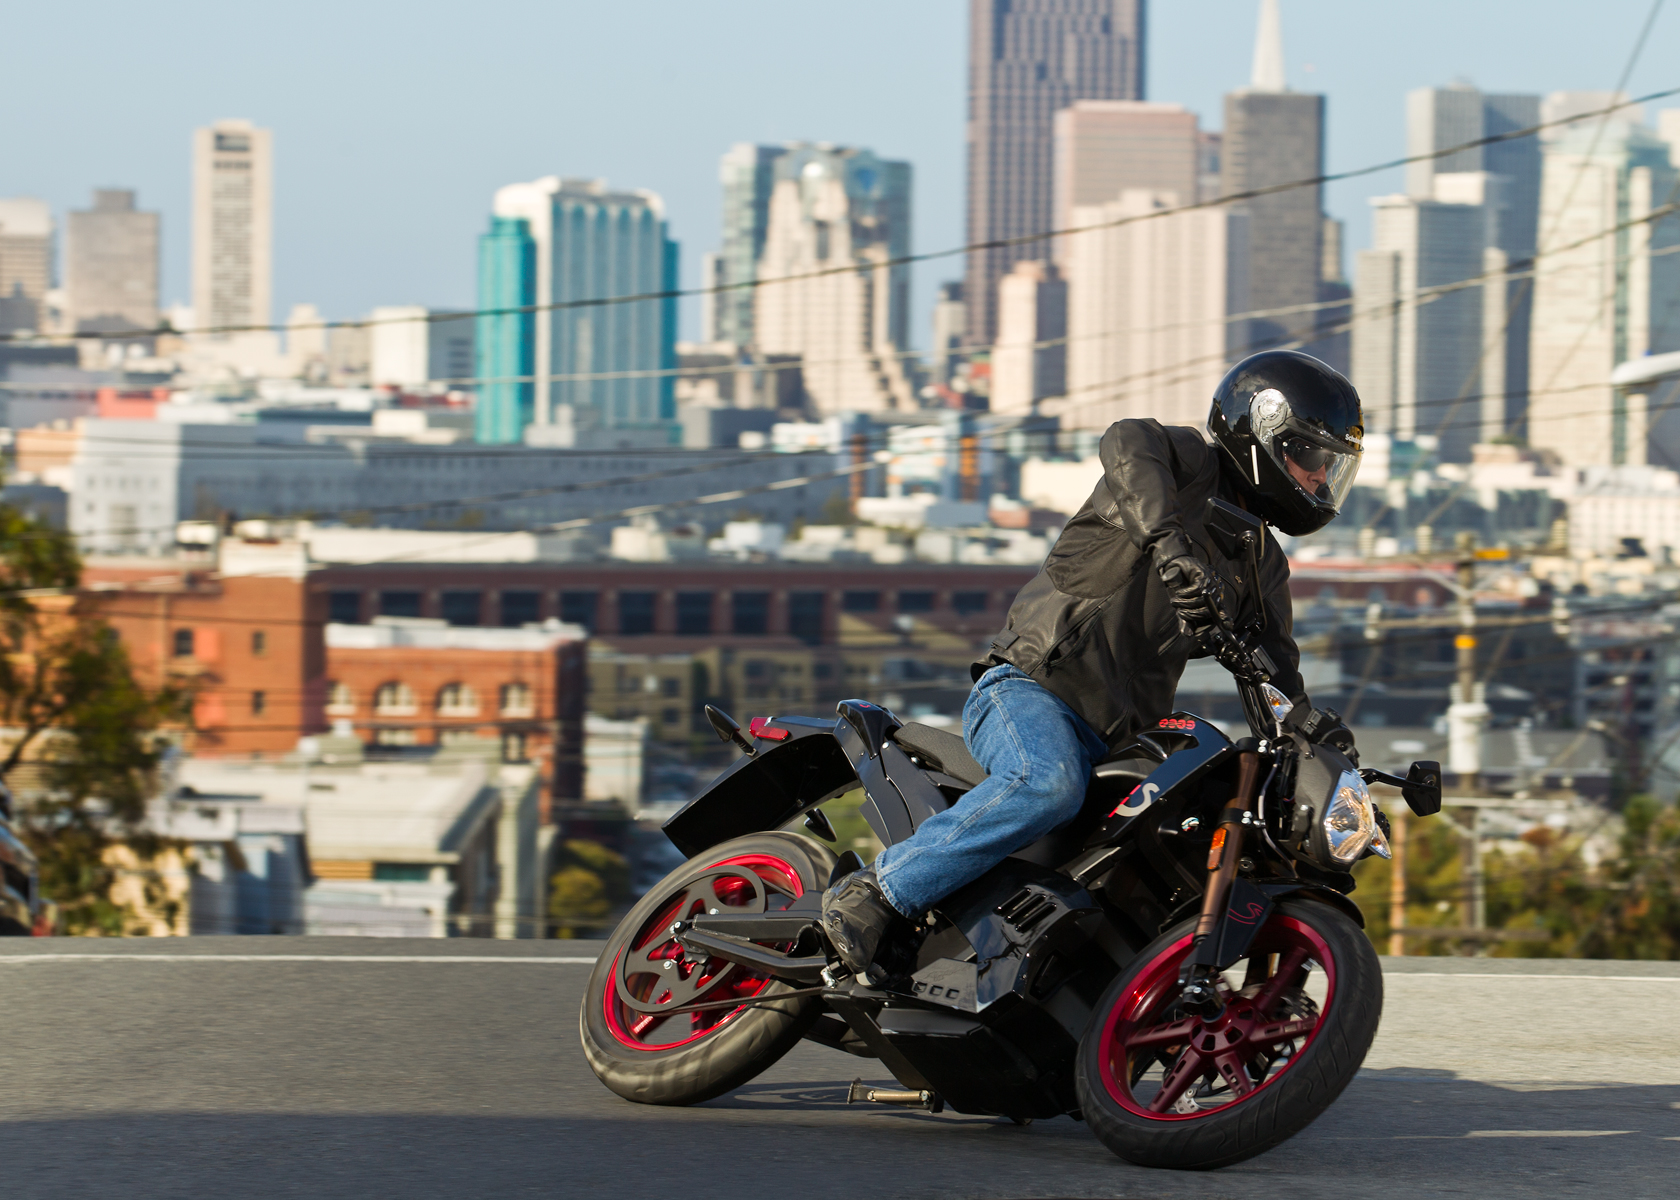 '.2012 Zero S Electric Motorcycle: Cruising in the City.'